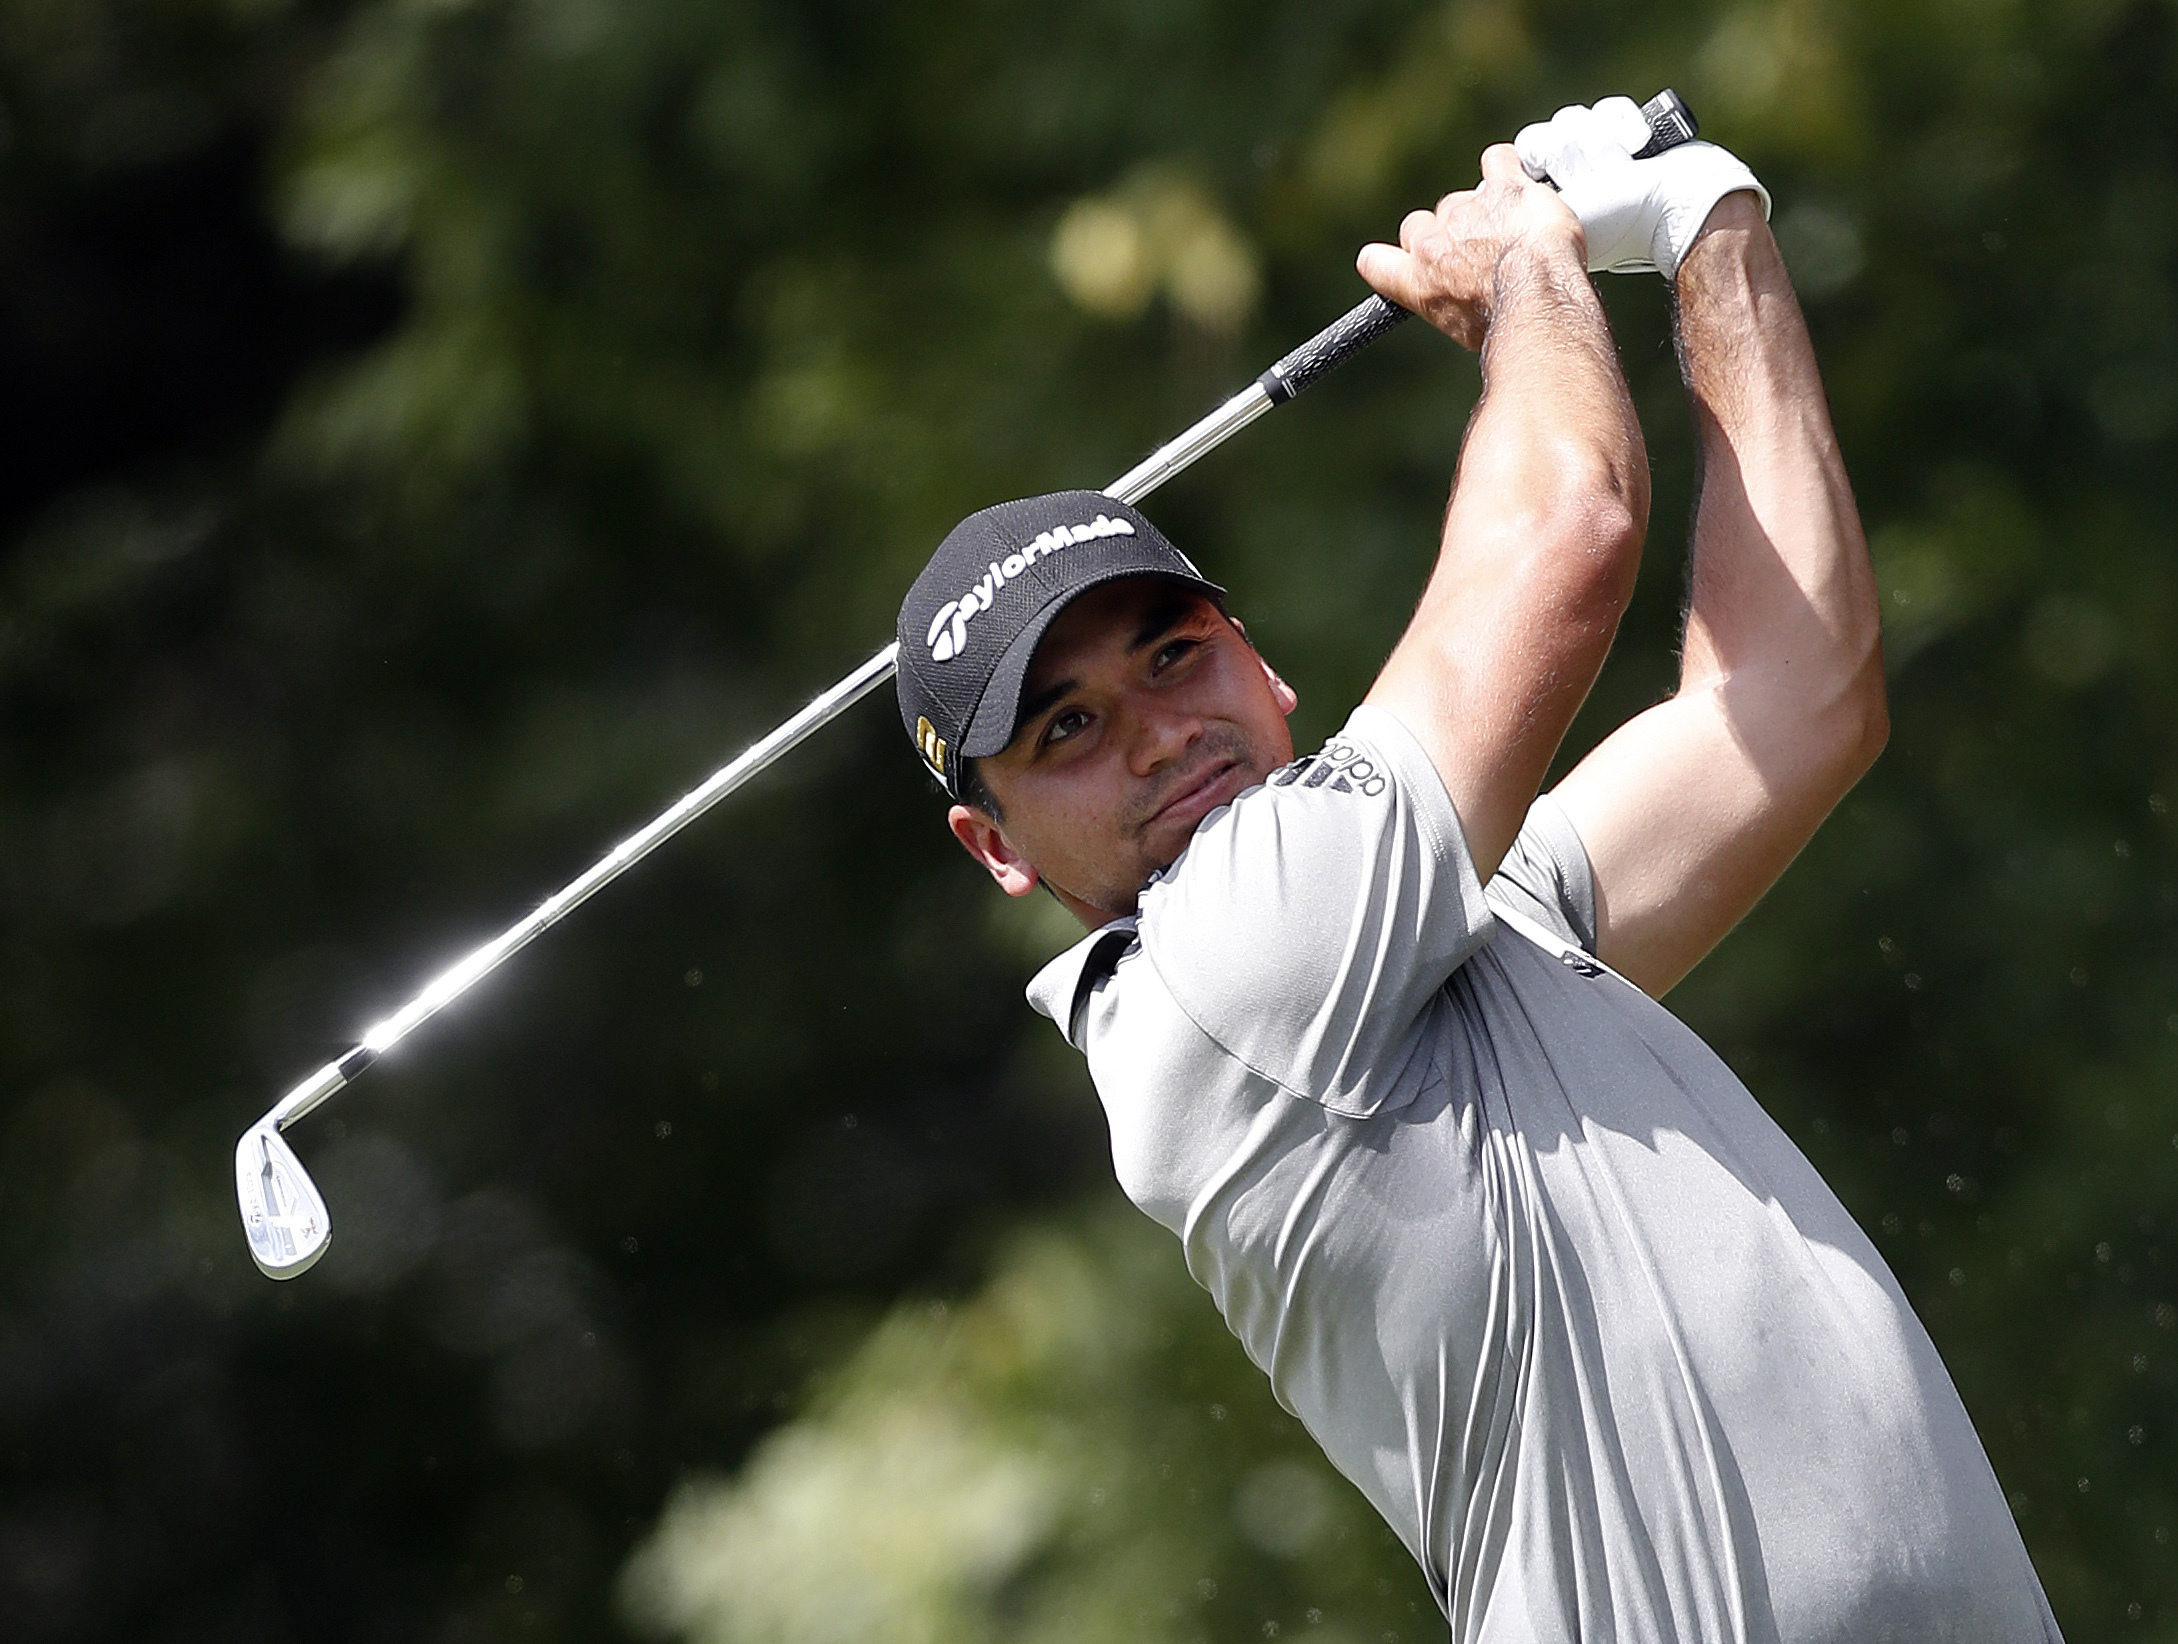 FILE - In this Sept. 23, 2016, file photo, Jason Day hits from the tee on the second hole during the second round of play at the Tour Championship golf tournament at East Lake Golf Club in Atlanta.  The world's No. 1 player hasn't been seen since he withd